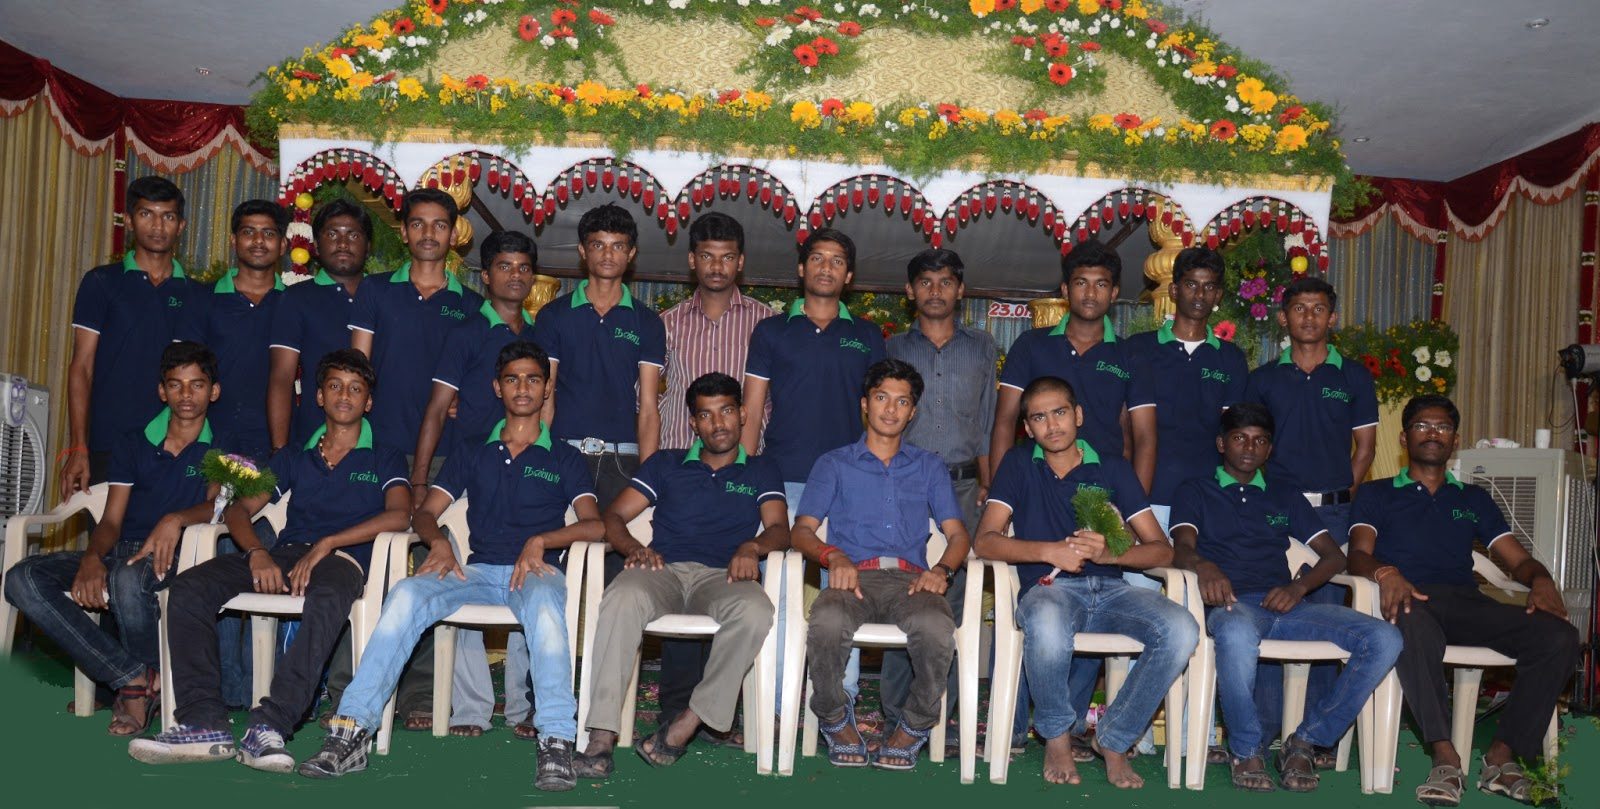 catering service coimbatore nanban catering servers coimbatore nanban catering server networks doing quality and hygienic service for weddings parties wedding receptions and all other outdoor catering services in all